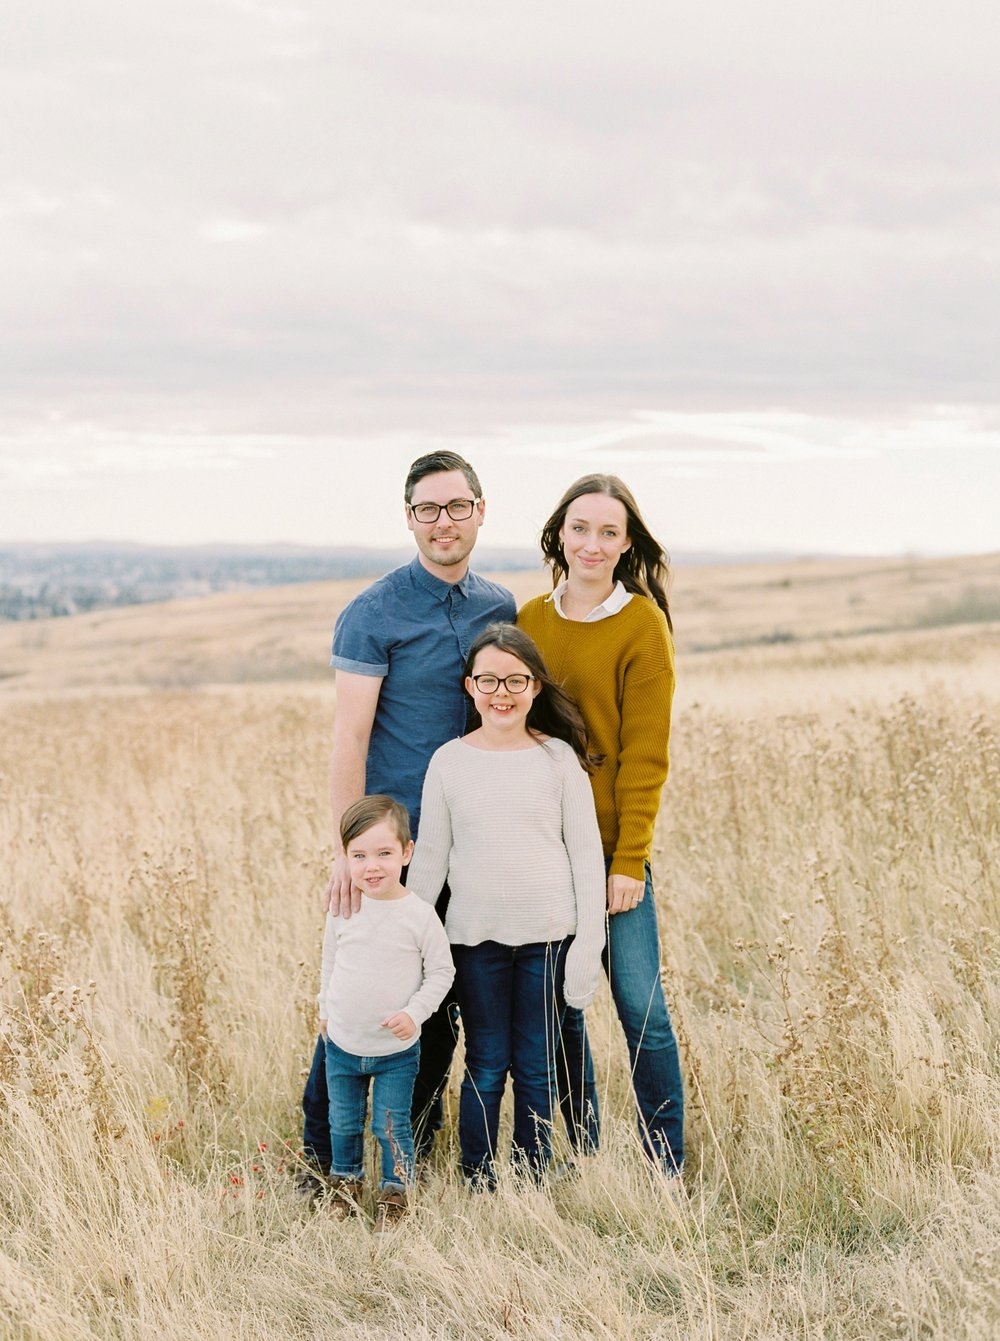 Fall family photographers | Calgary fine art family photographer | Justine Milton Photography